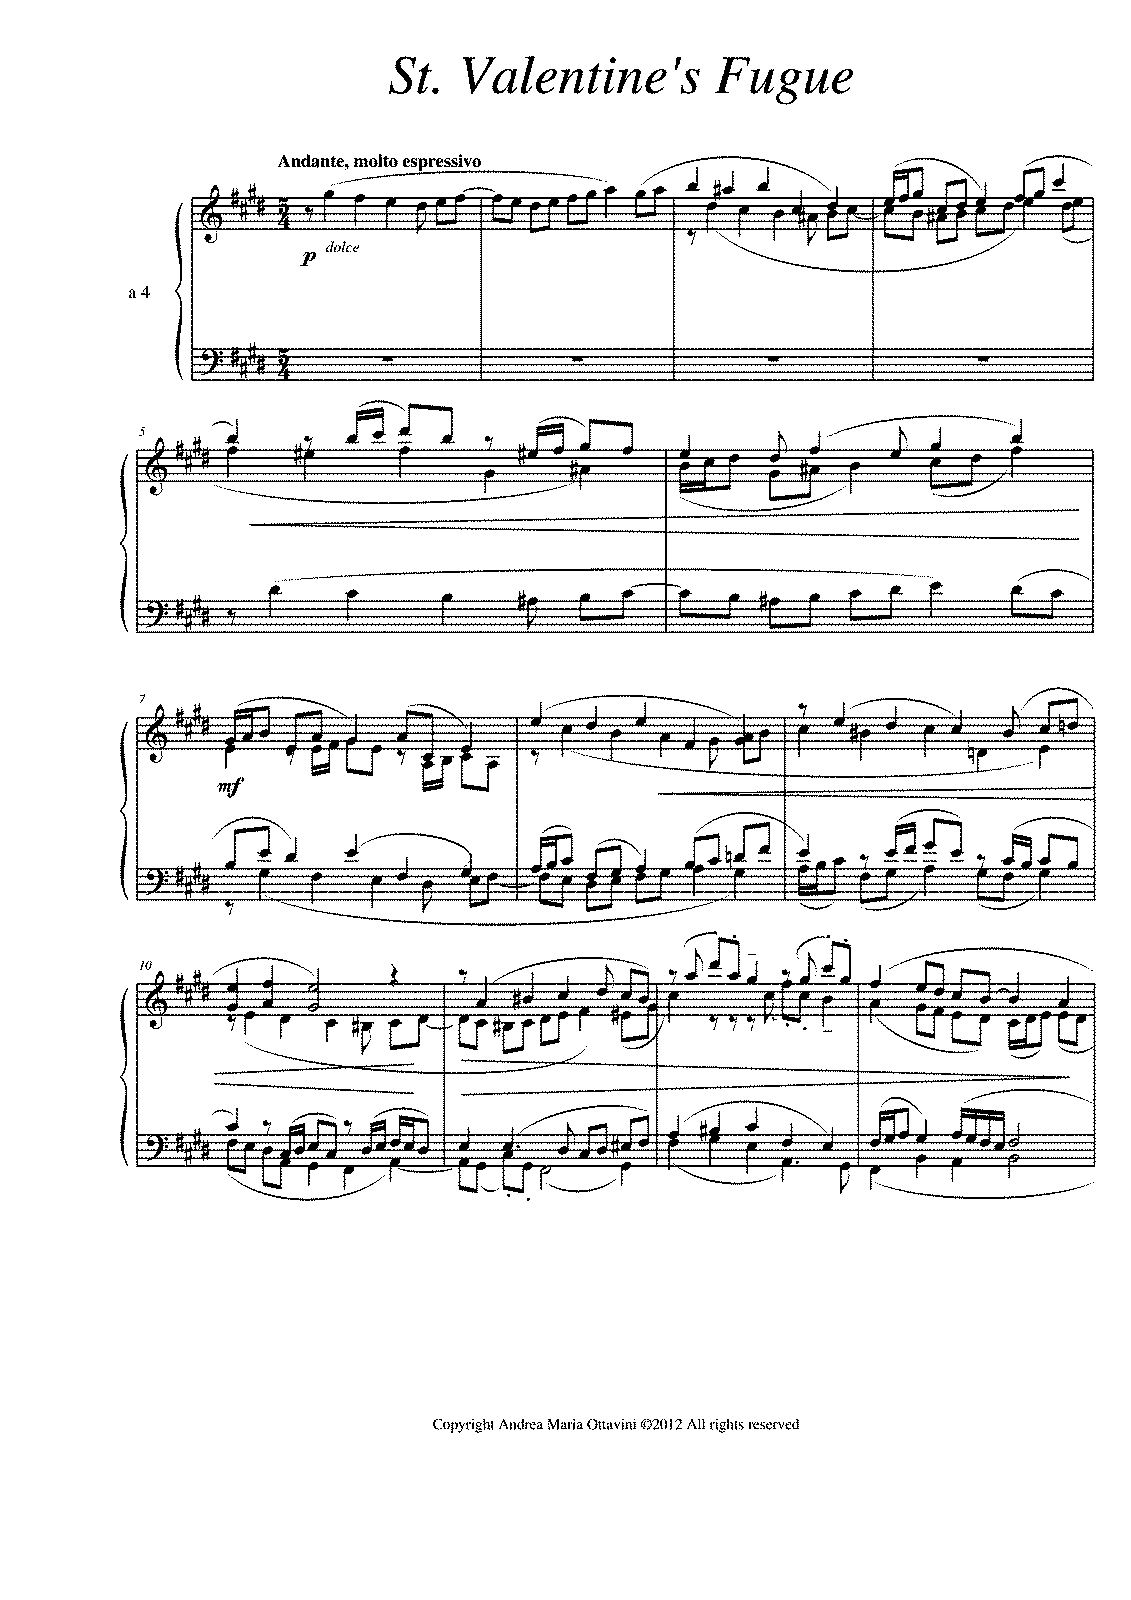 PMLP320185-Fugue in E major (St. Valentine's Fugue)(a 4).pdf